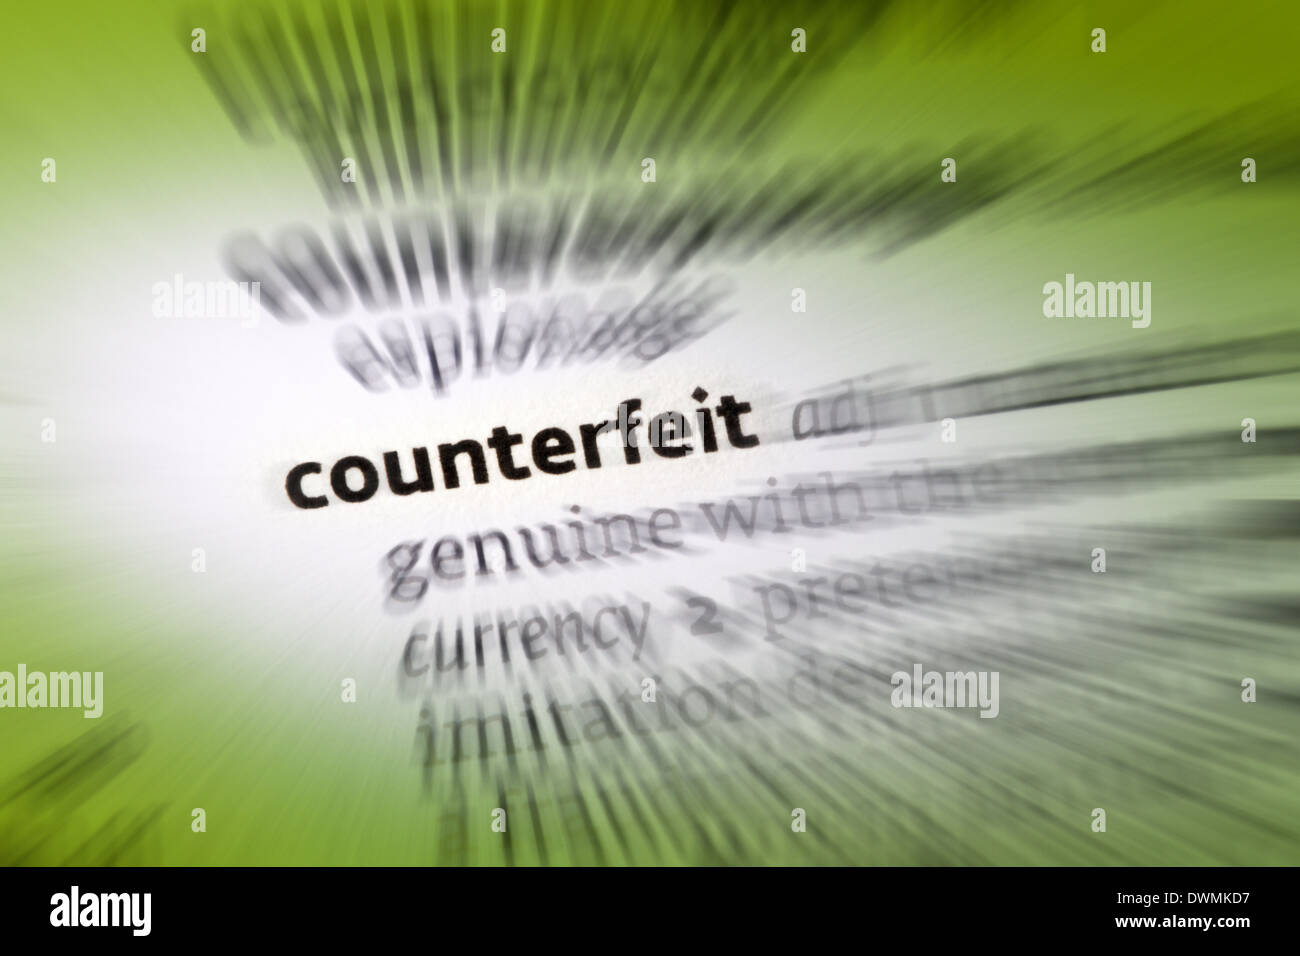 Counterfeit - an object made in exact imitation of something valuable or important with the intention to deceive or defraud - Stock Image